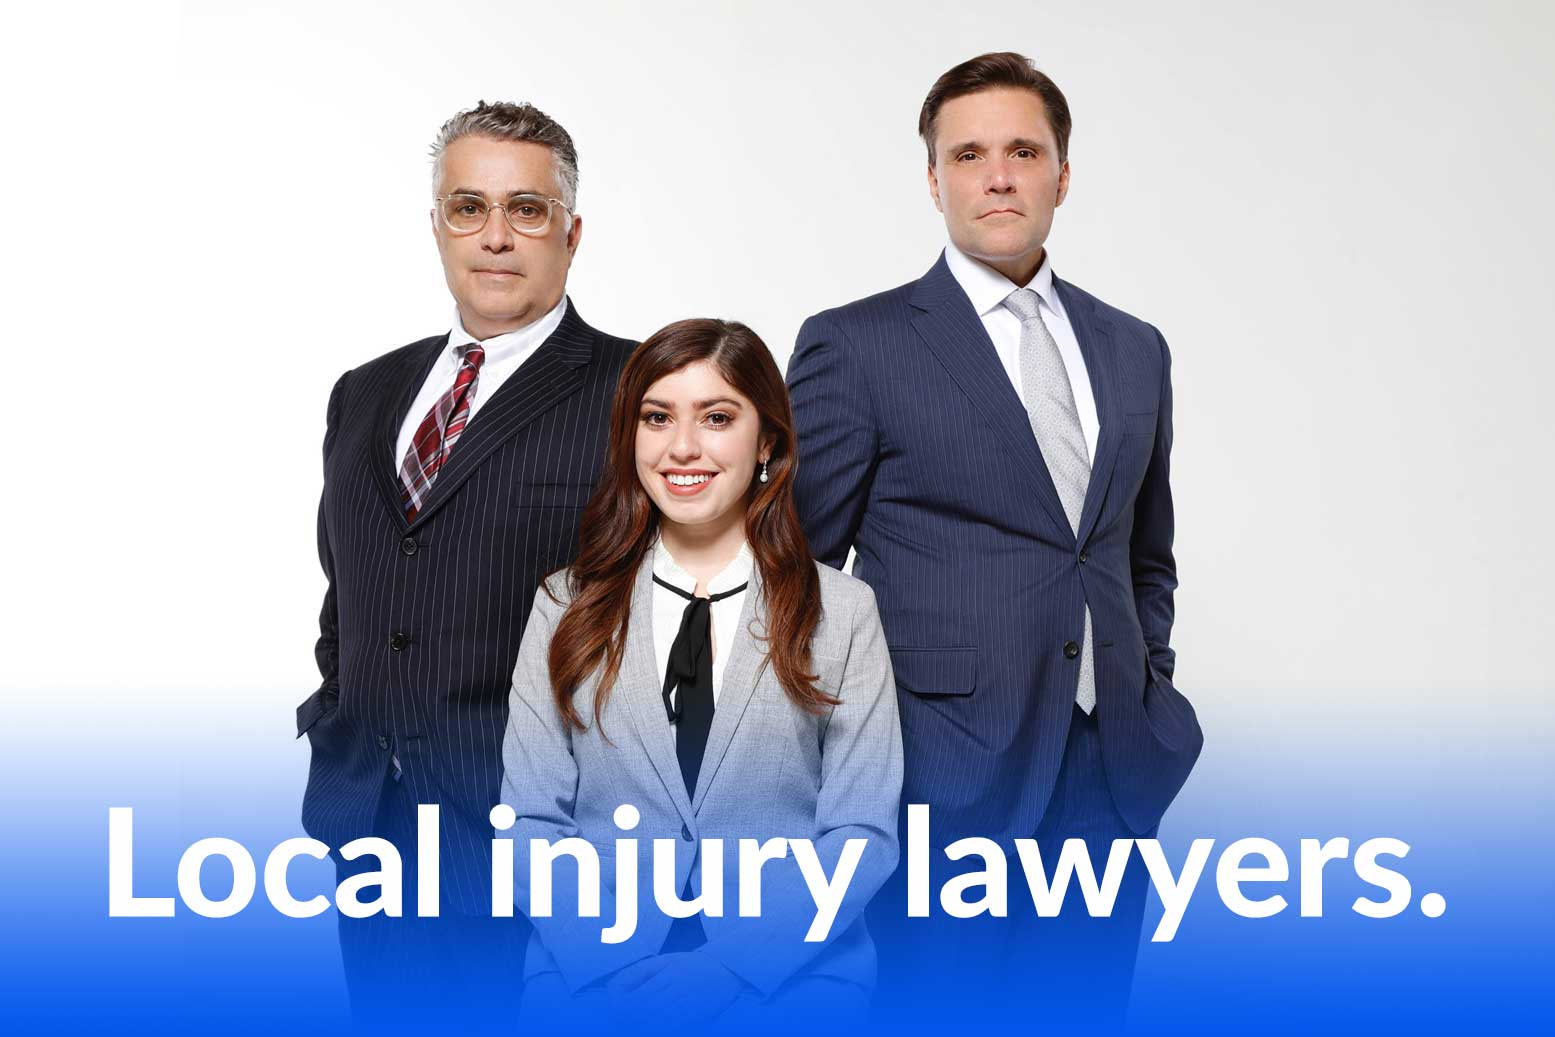 Parisi and Bellavia Local Injury lawyers